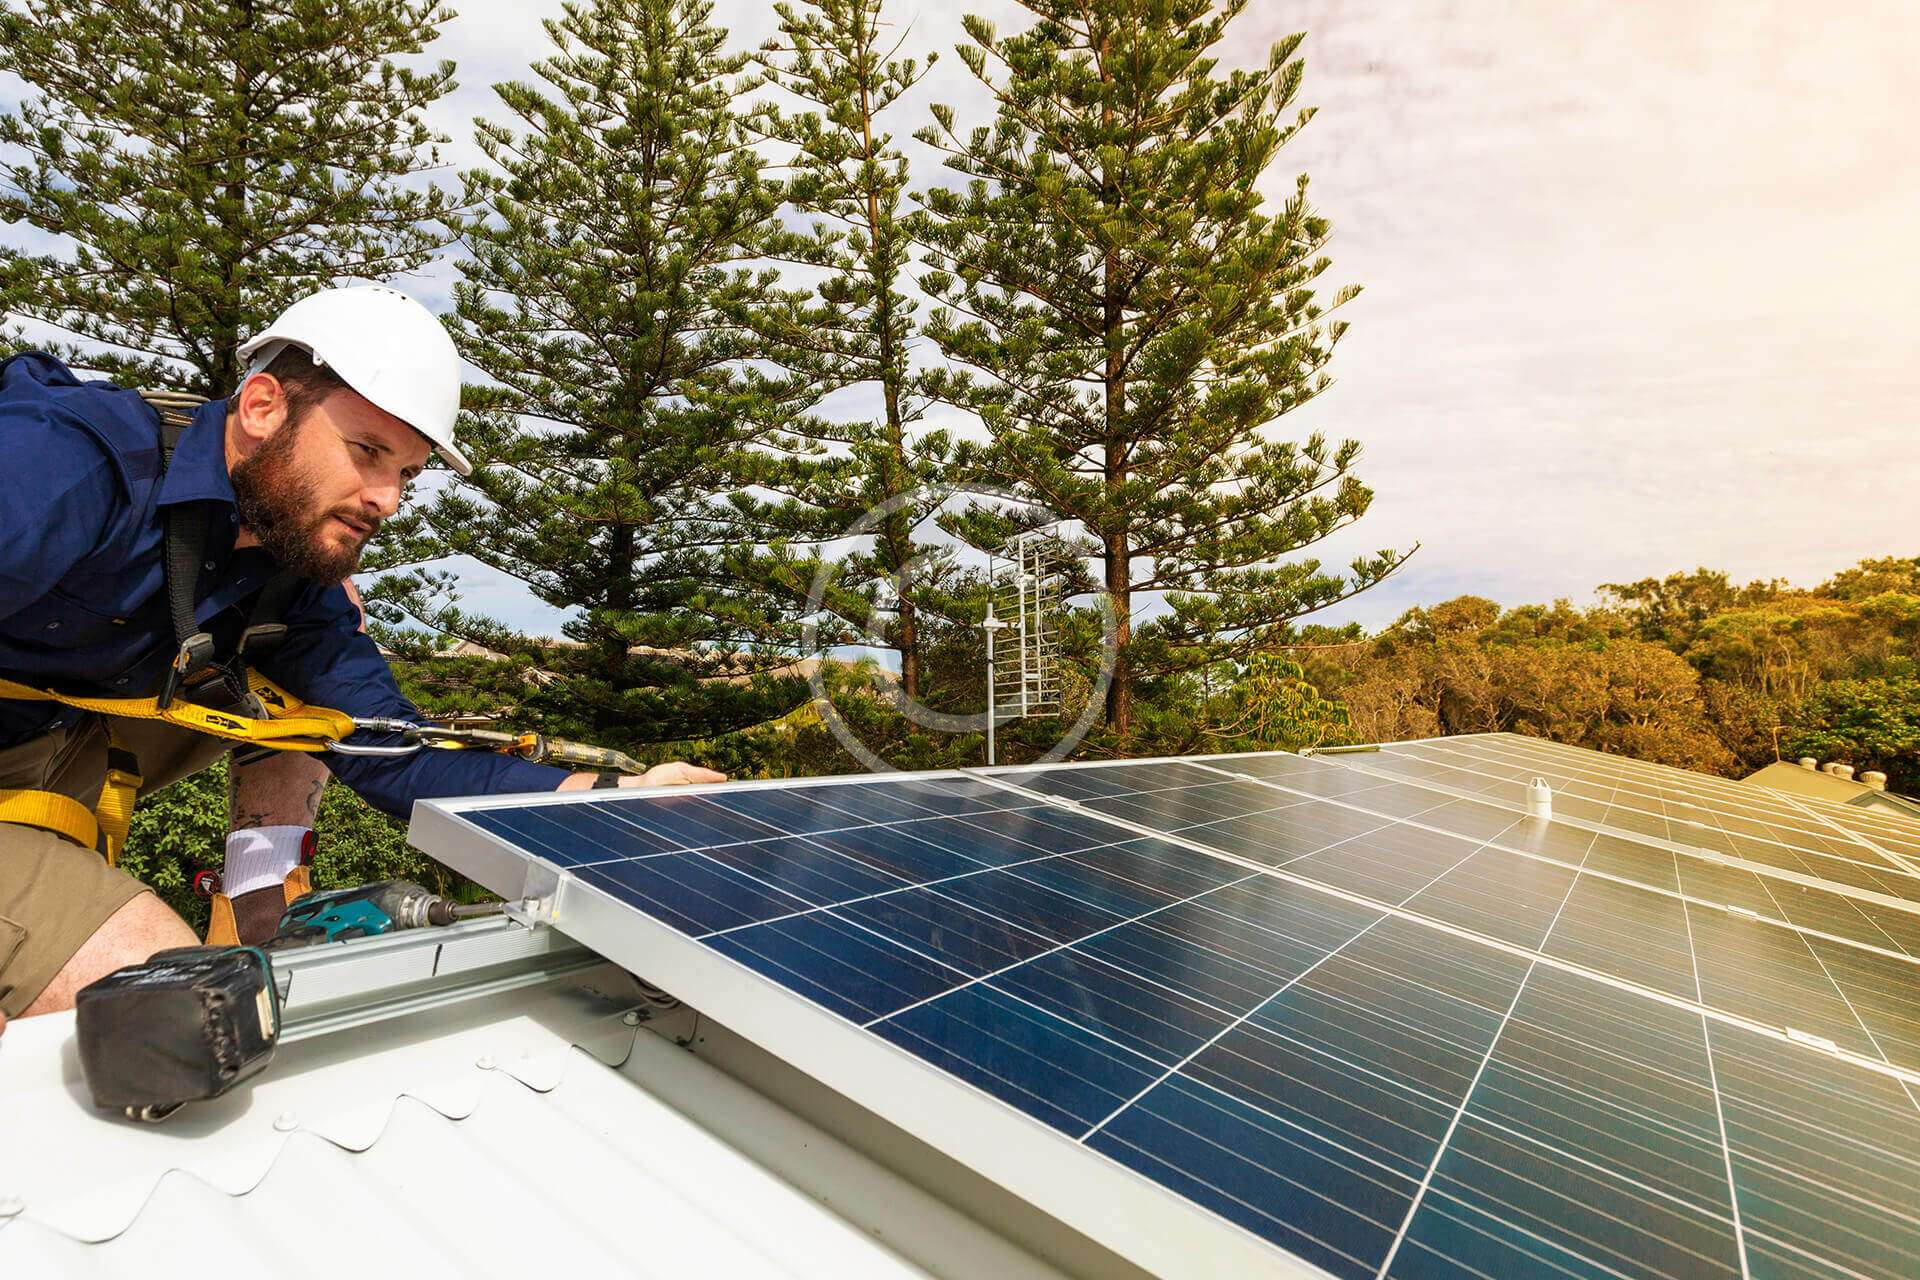 Customized design of photovoltaic systems to offset electrical bill